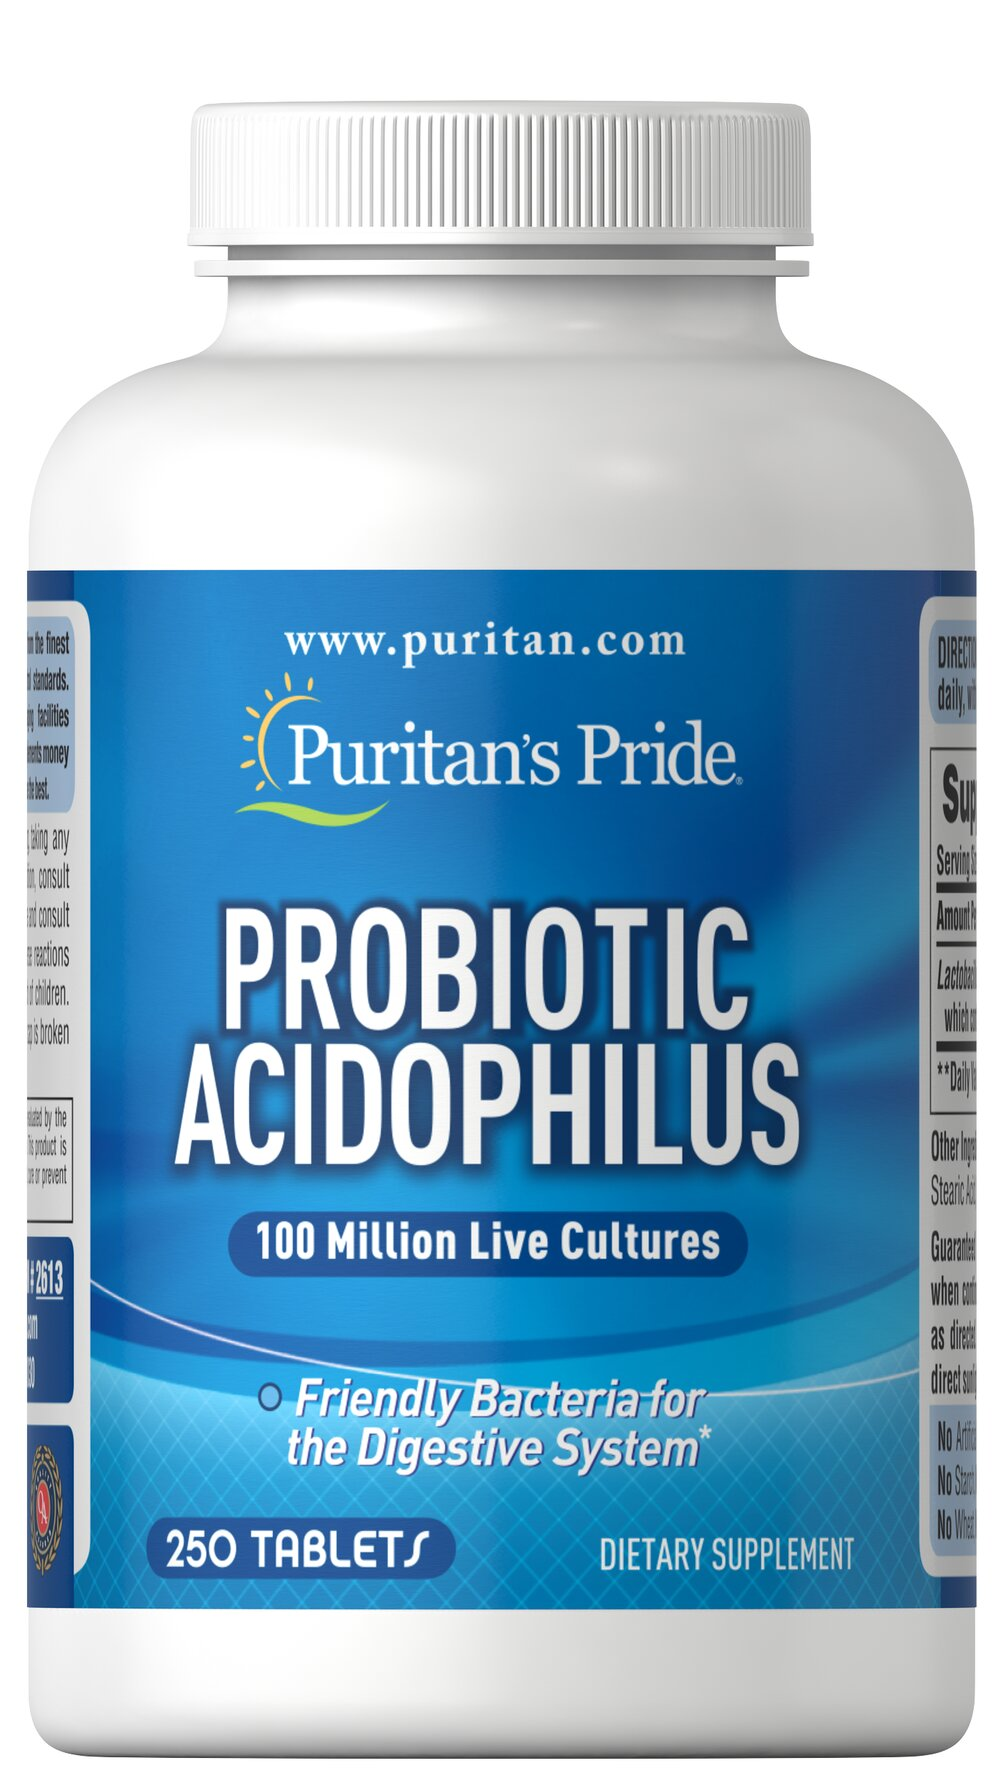 Probiotic Acidophilus <p>Acidophilus supports a favorable environment for the absorption of nutrients, encourages intestinal microflora balance, and promotes the healthy functioning of the intestinal system.** Our Probiotic Acidophilus contains over 100 million active Lactobacillus Acidophilus (including the naturally occurring metabolic product produced by Lactobacilli) at the time of manufacture.</p> 250 Capsules  $18.99